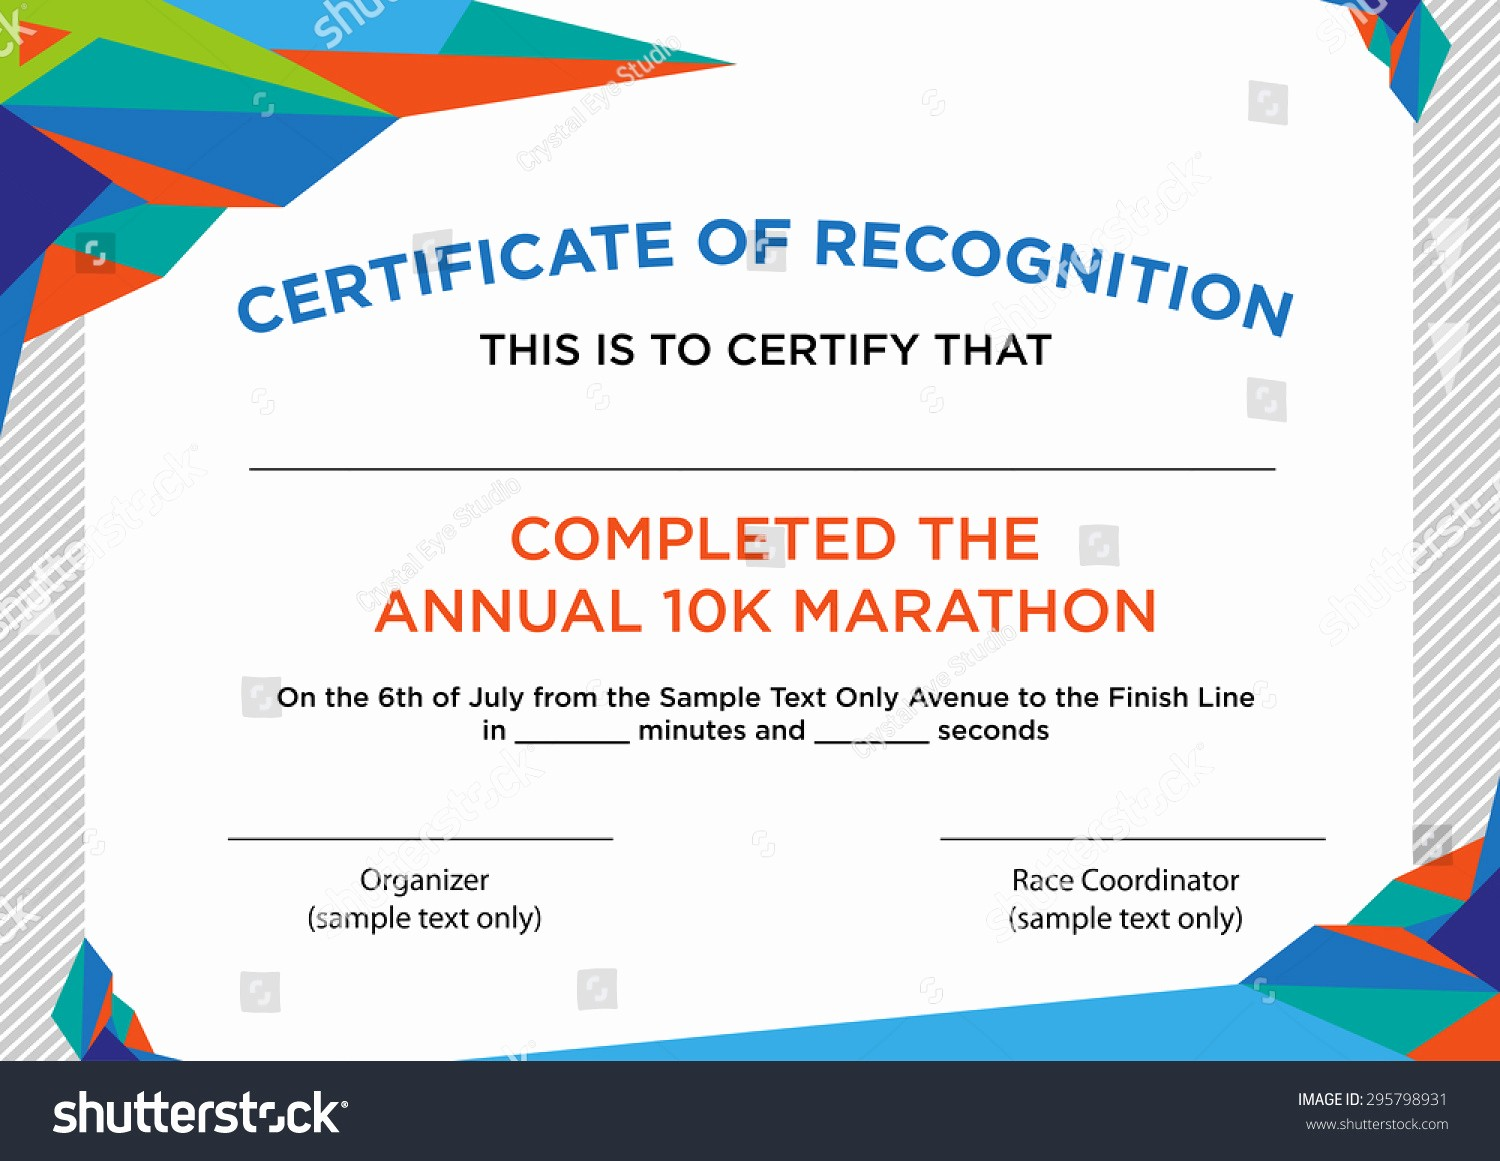 Certificate Of Recognition Editable Template Awesome Futuristic Style Certificate Recognition Sample Text Stock